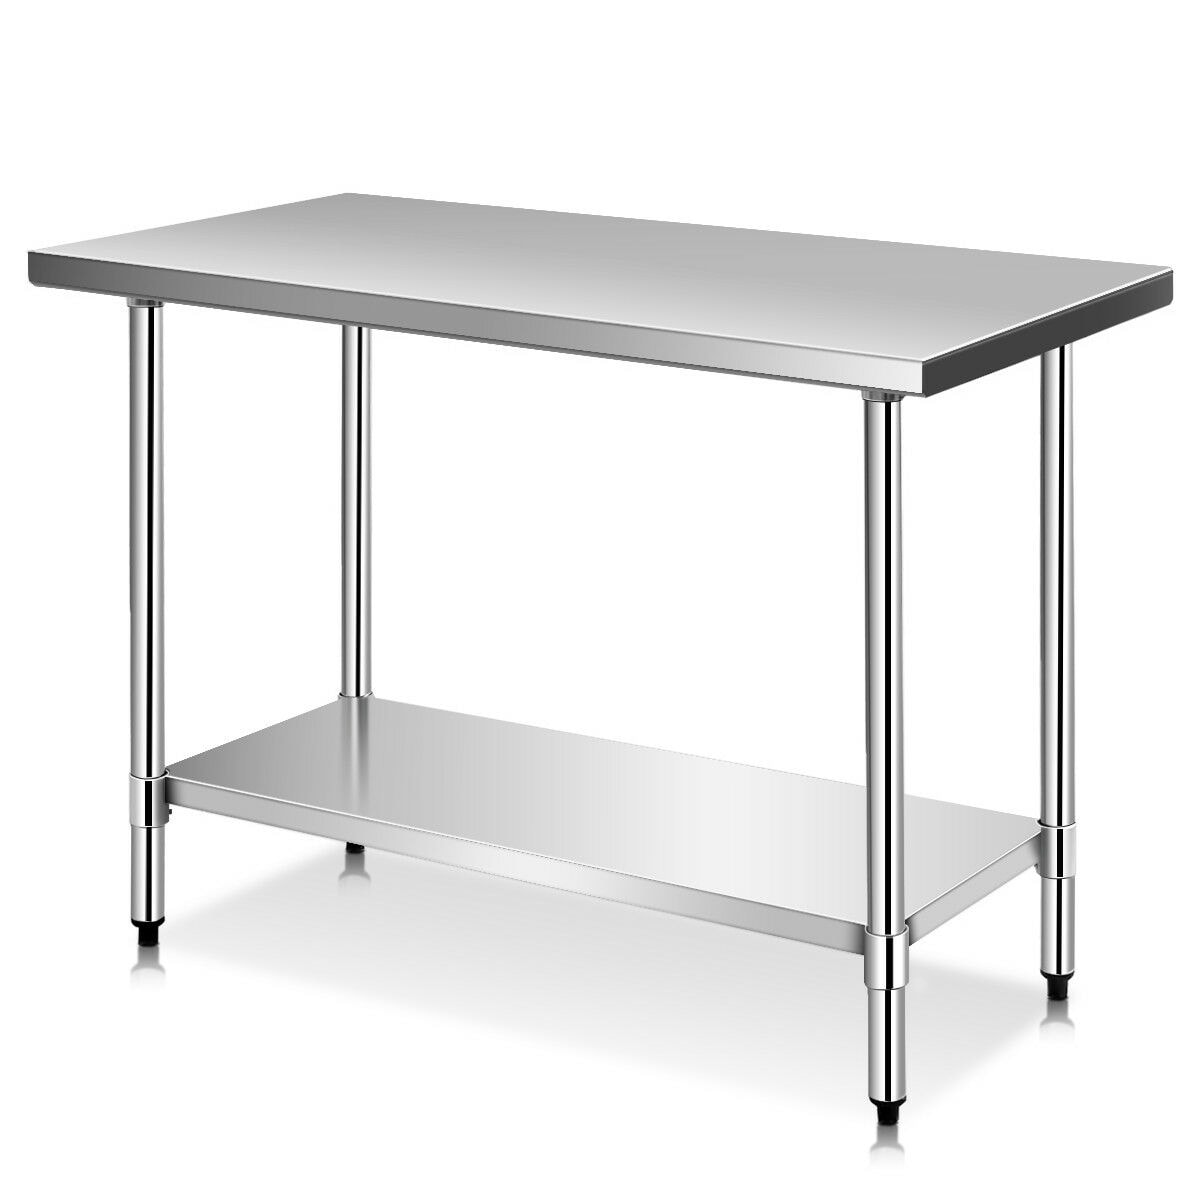 Stainless Restaurant Table Costway 24 X 48 Stainless Steel Work Prep Table Commercial Kitchen Restaurant Sliver